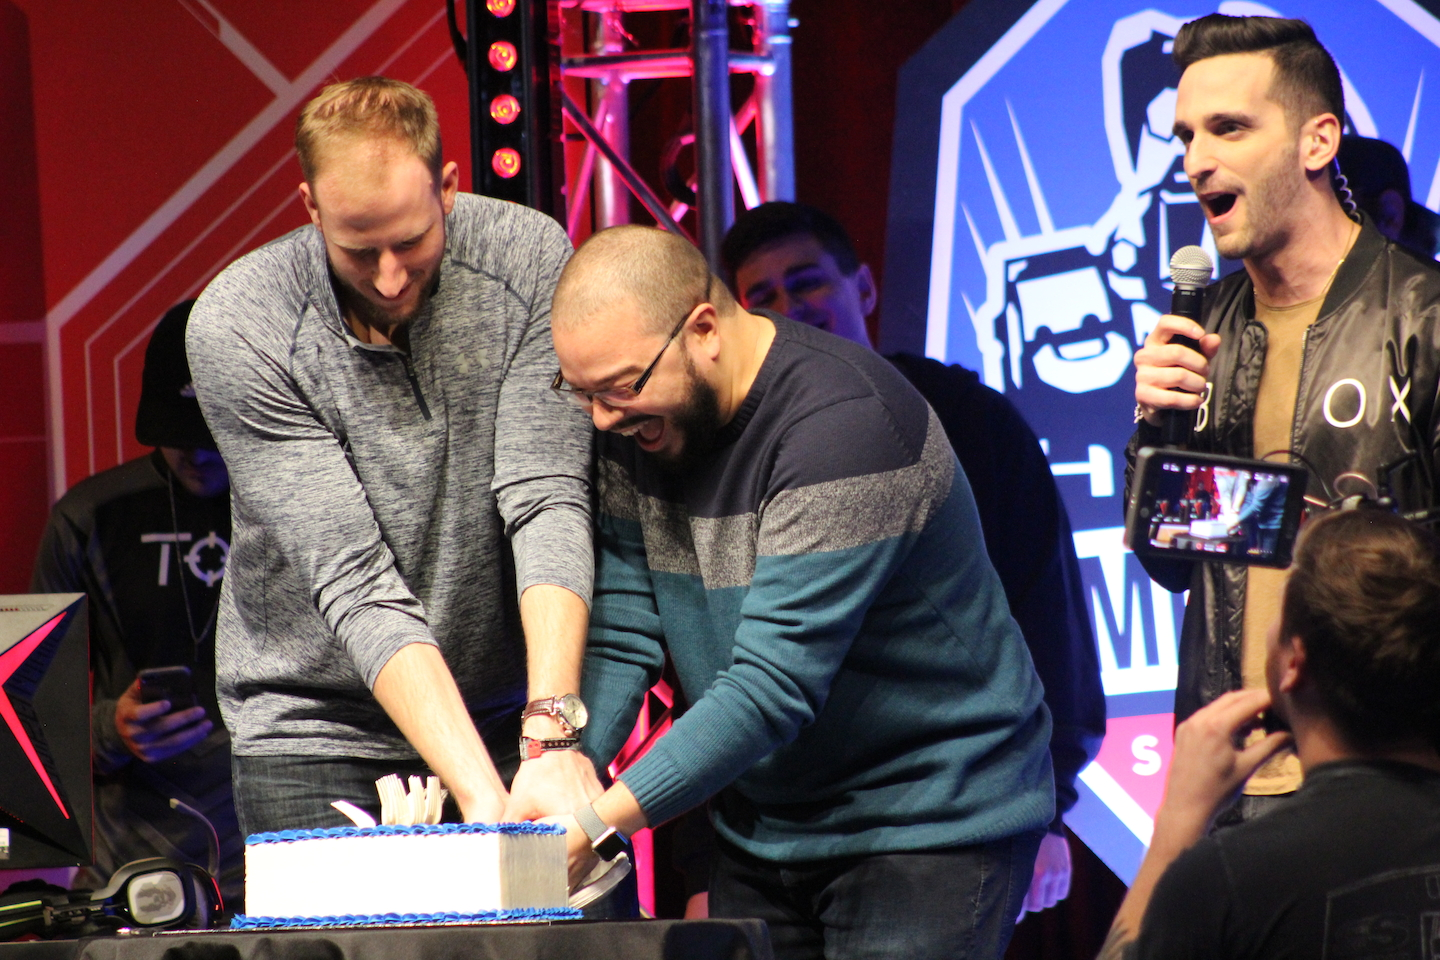 Team Goldenboy and Team Walshy jumped into their favorite vehicles on Halo 3's most legendary BTB maps and blew eachother into smithereens all for a great cause as $10,000 was donated to Gamers For Giving.